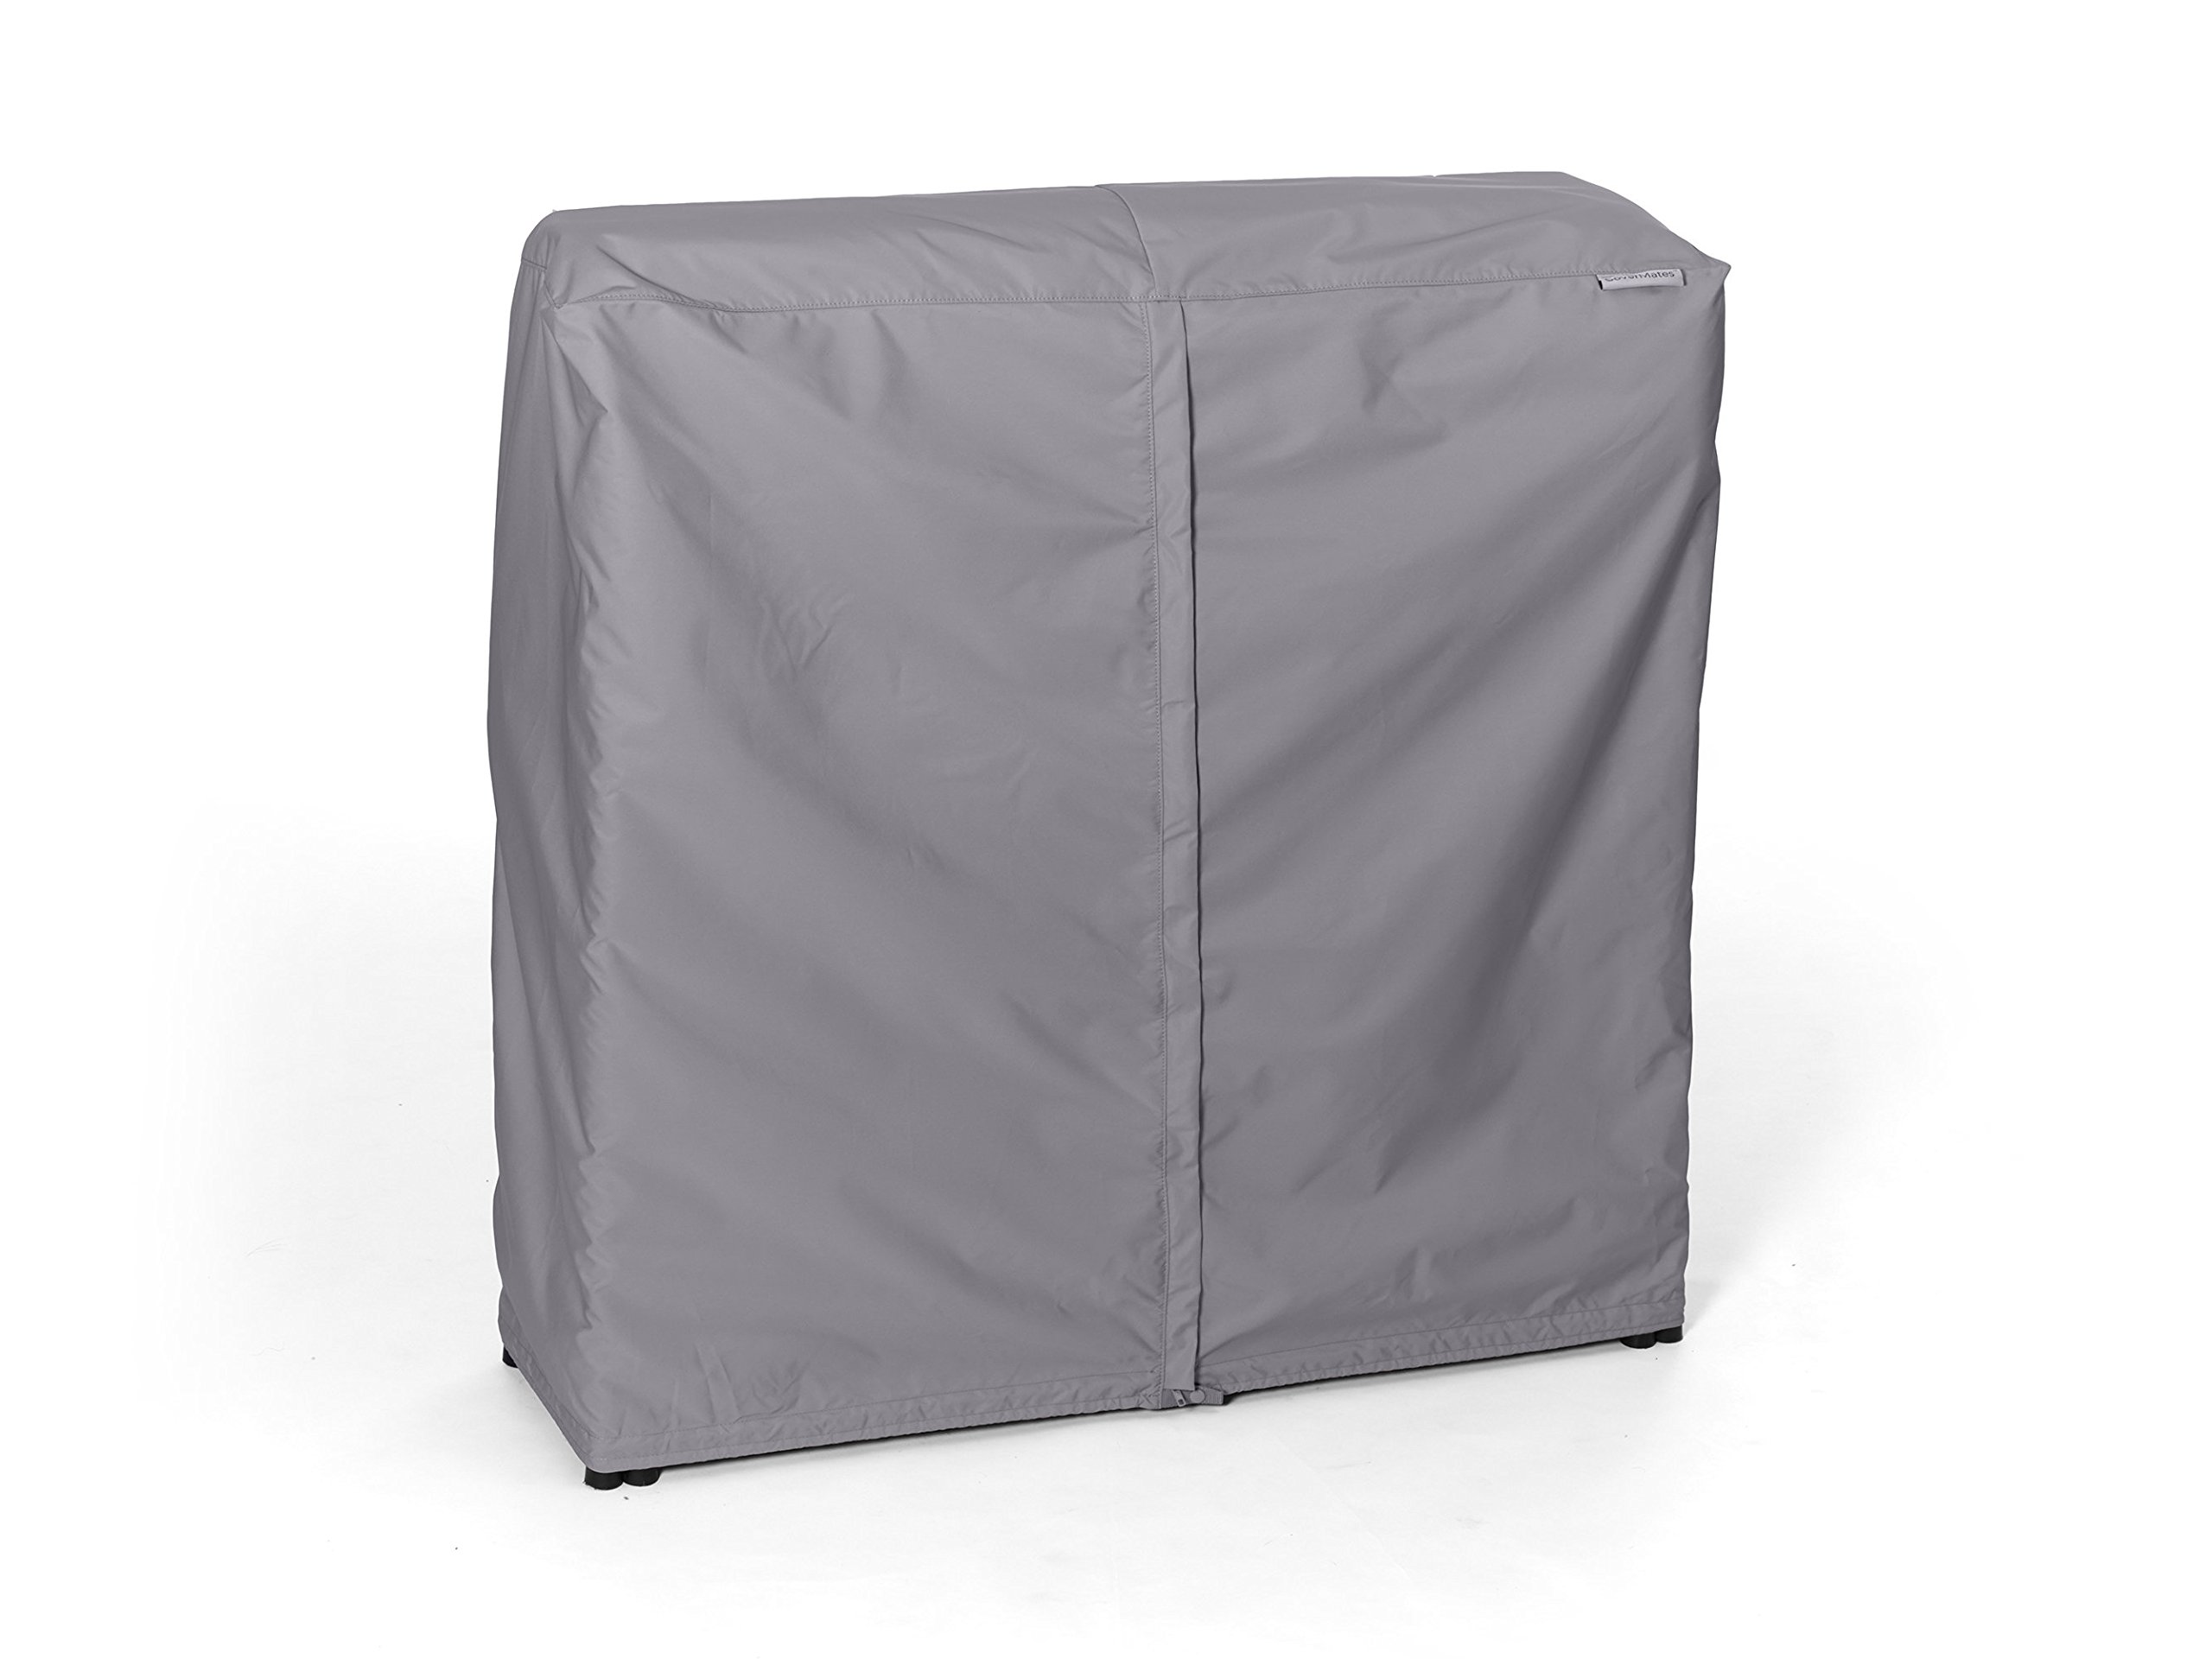 Covermates - Log Rack Cover - 4 FT 50L x 25W x 44H - Elite Collection - 3 YR Warranty - Year Around Protection - Charcoal